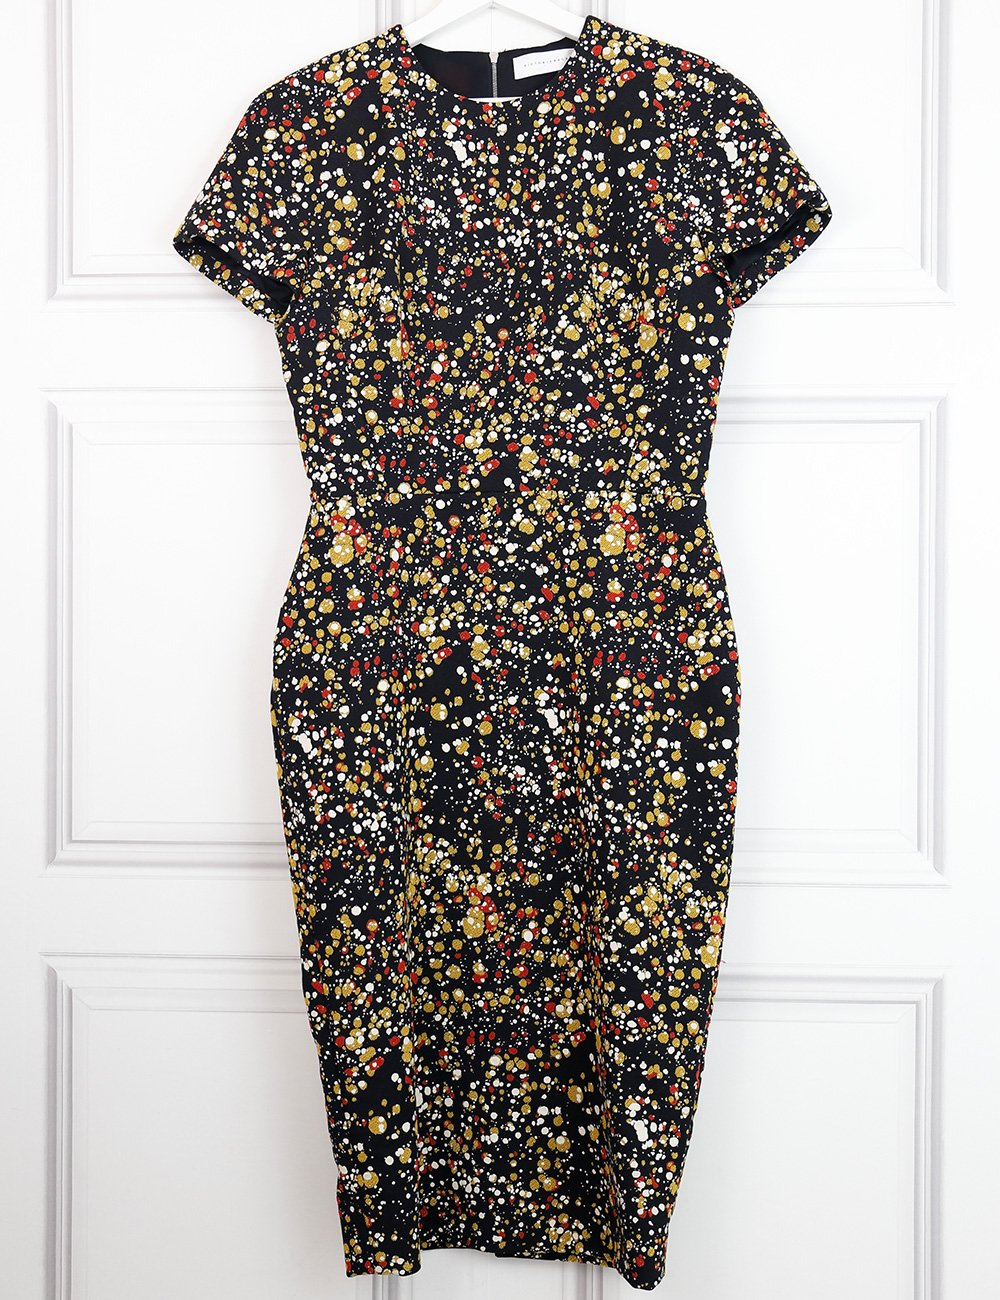 Victoria Beckham multicolour confetti print dress 14UK- My Wardrobe Mistakes